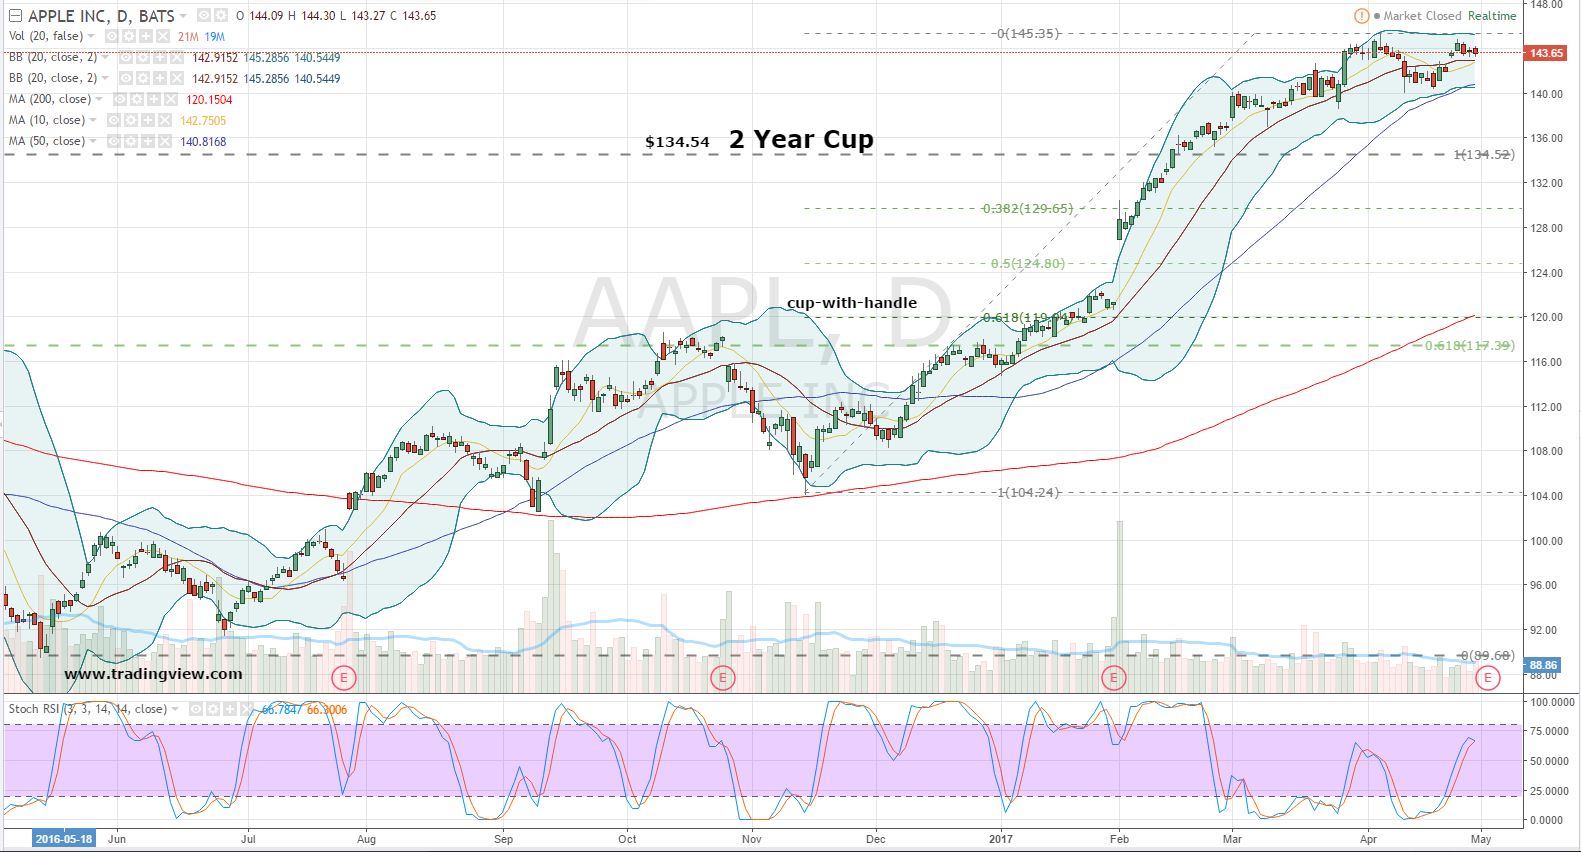 Checking the Overall Picture for Apple Inc. (AAPL)